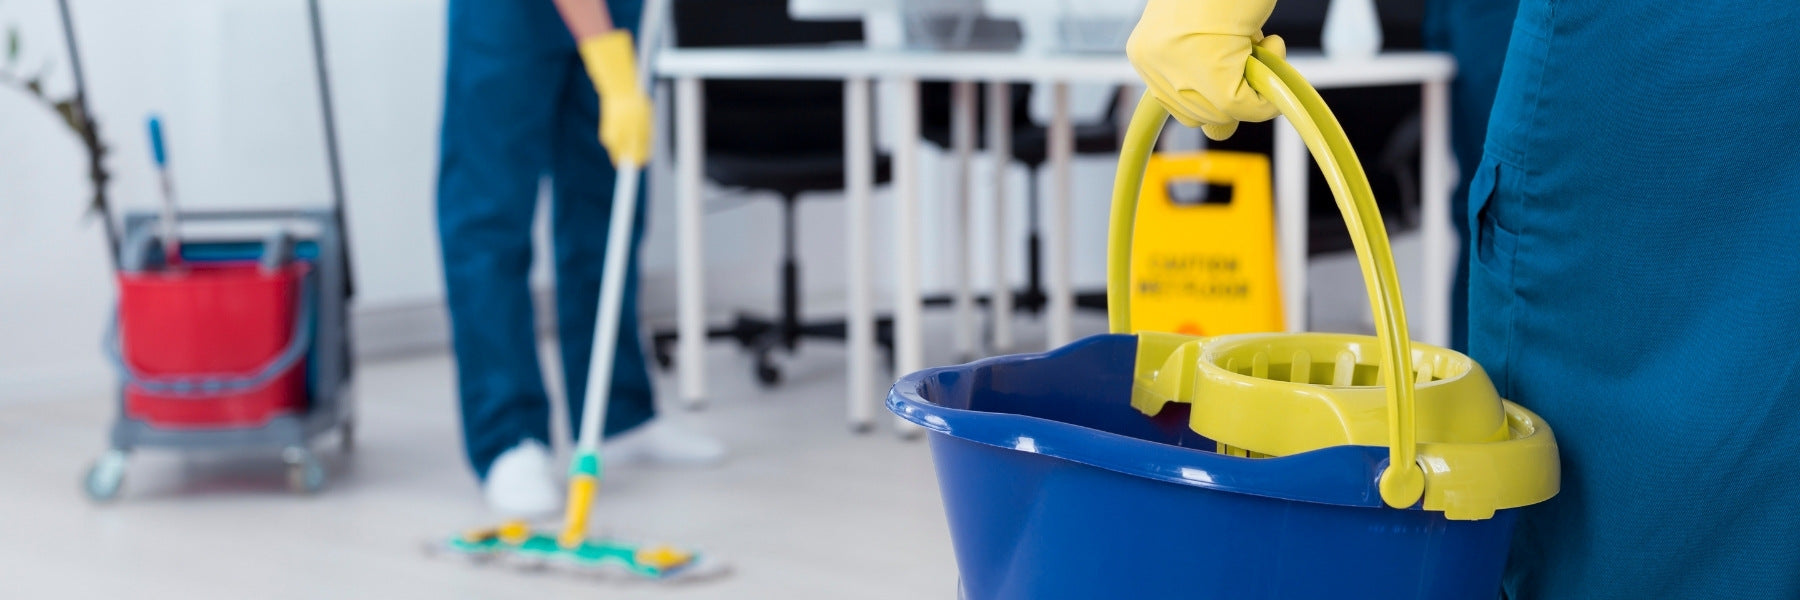 Professional cleaning crew using Jan-Supply's best practices for commercial cleaning.